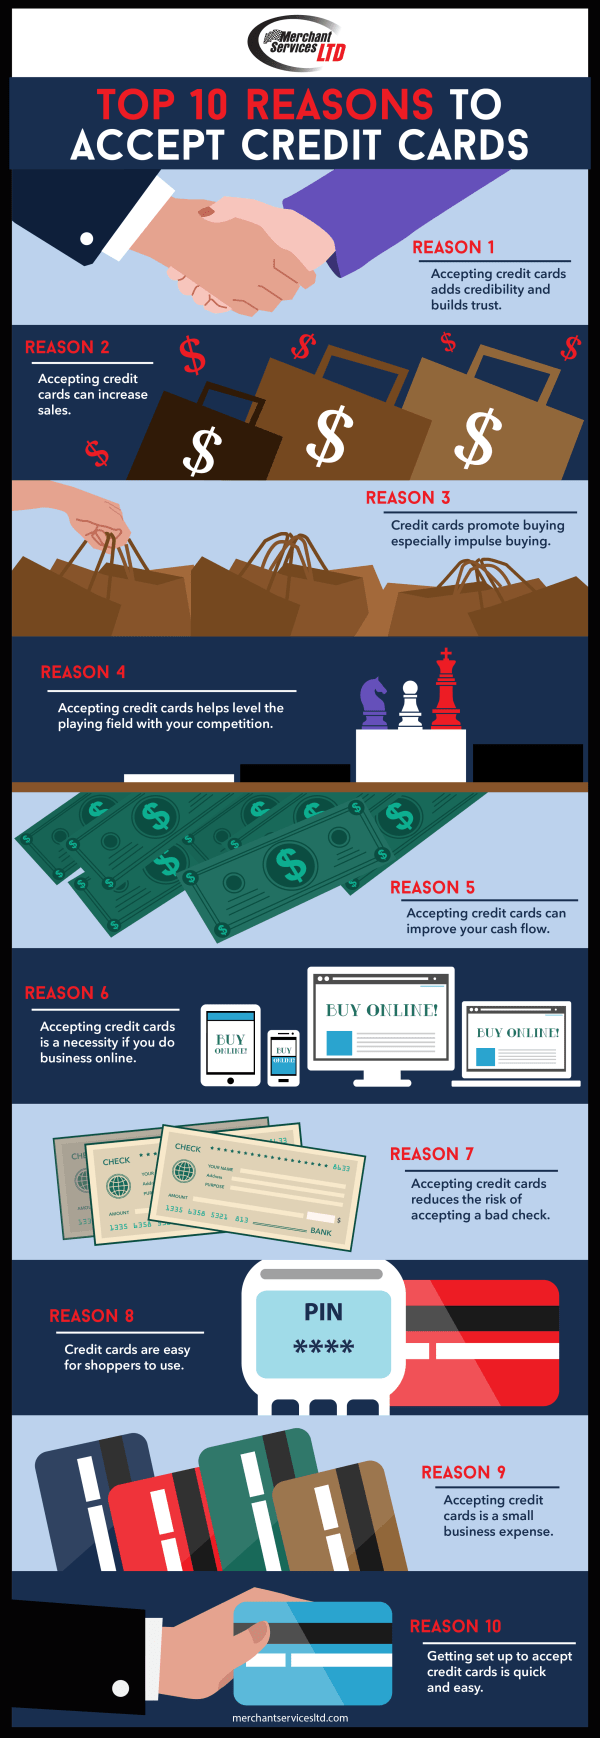 Accept-Credit-Cards-infographic-galleryr